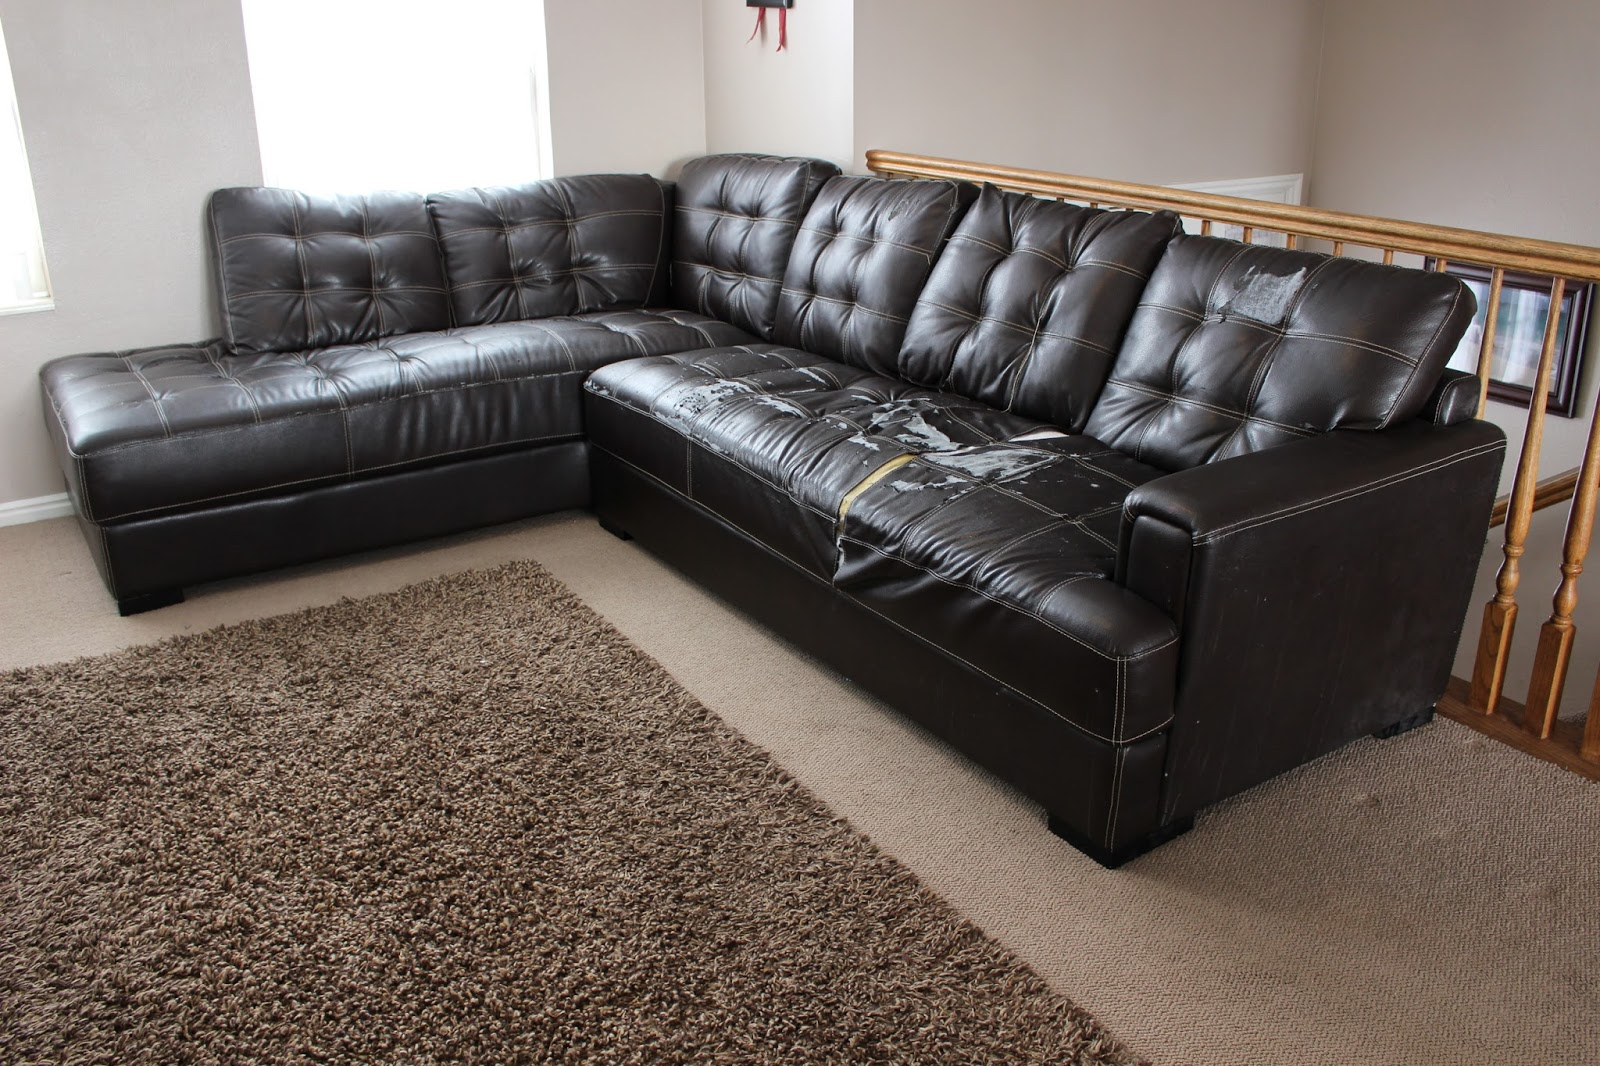 sofa reupholstering contemporary corner sofas how to reupholster a sectional remodelaholic 28 ways